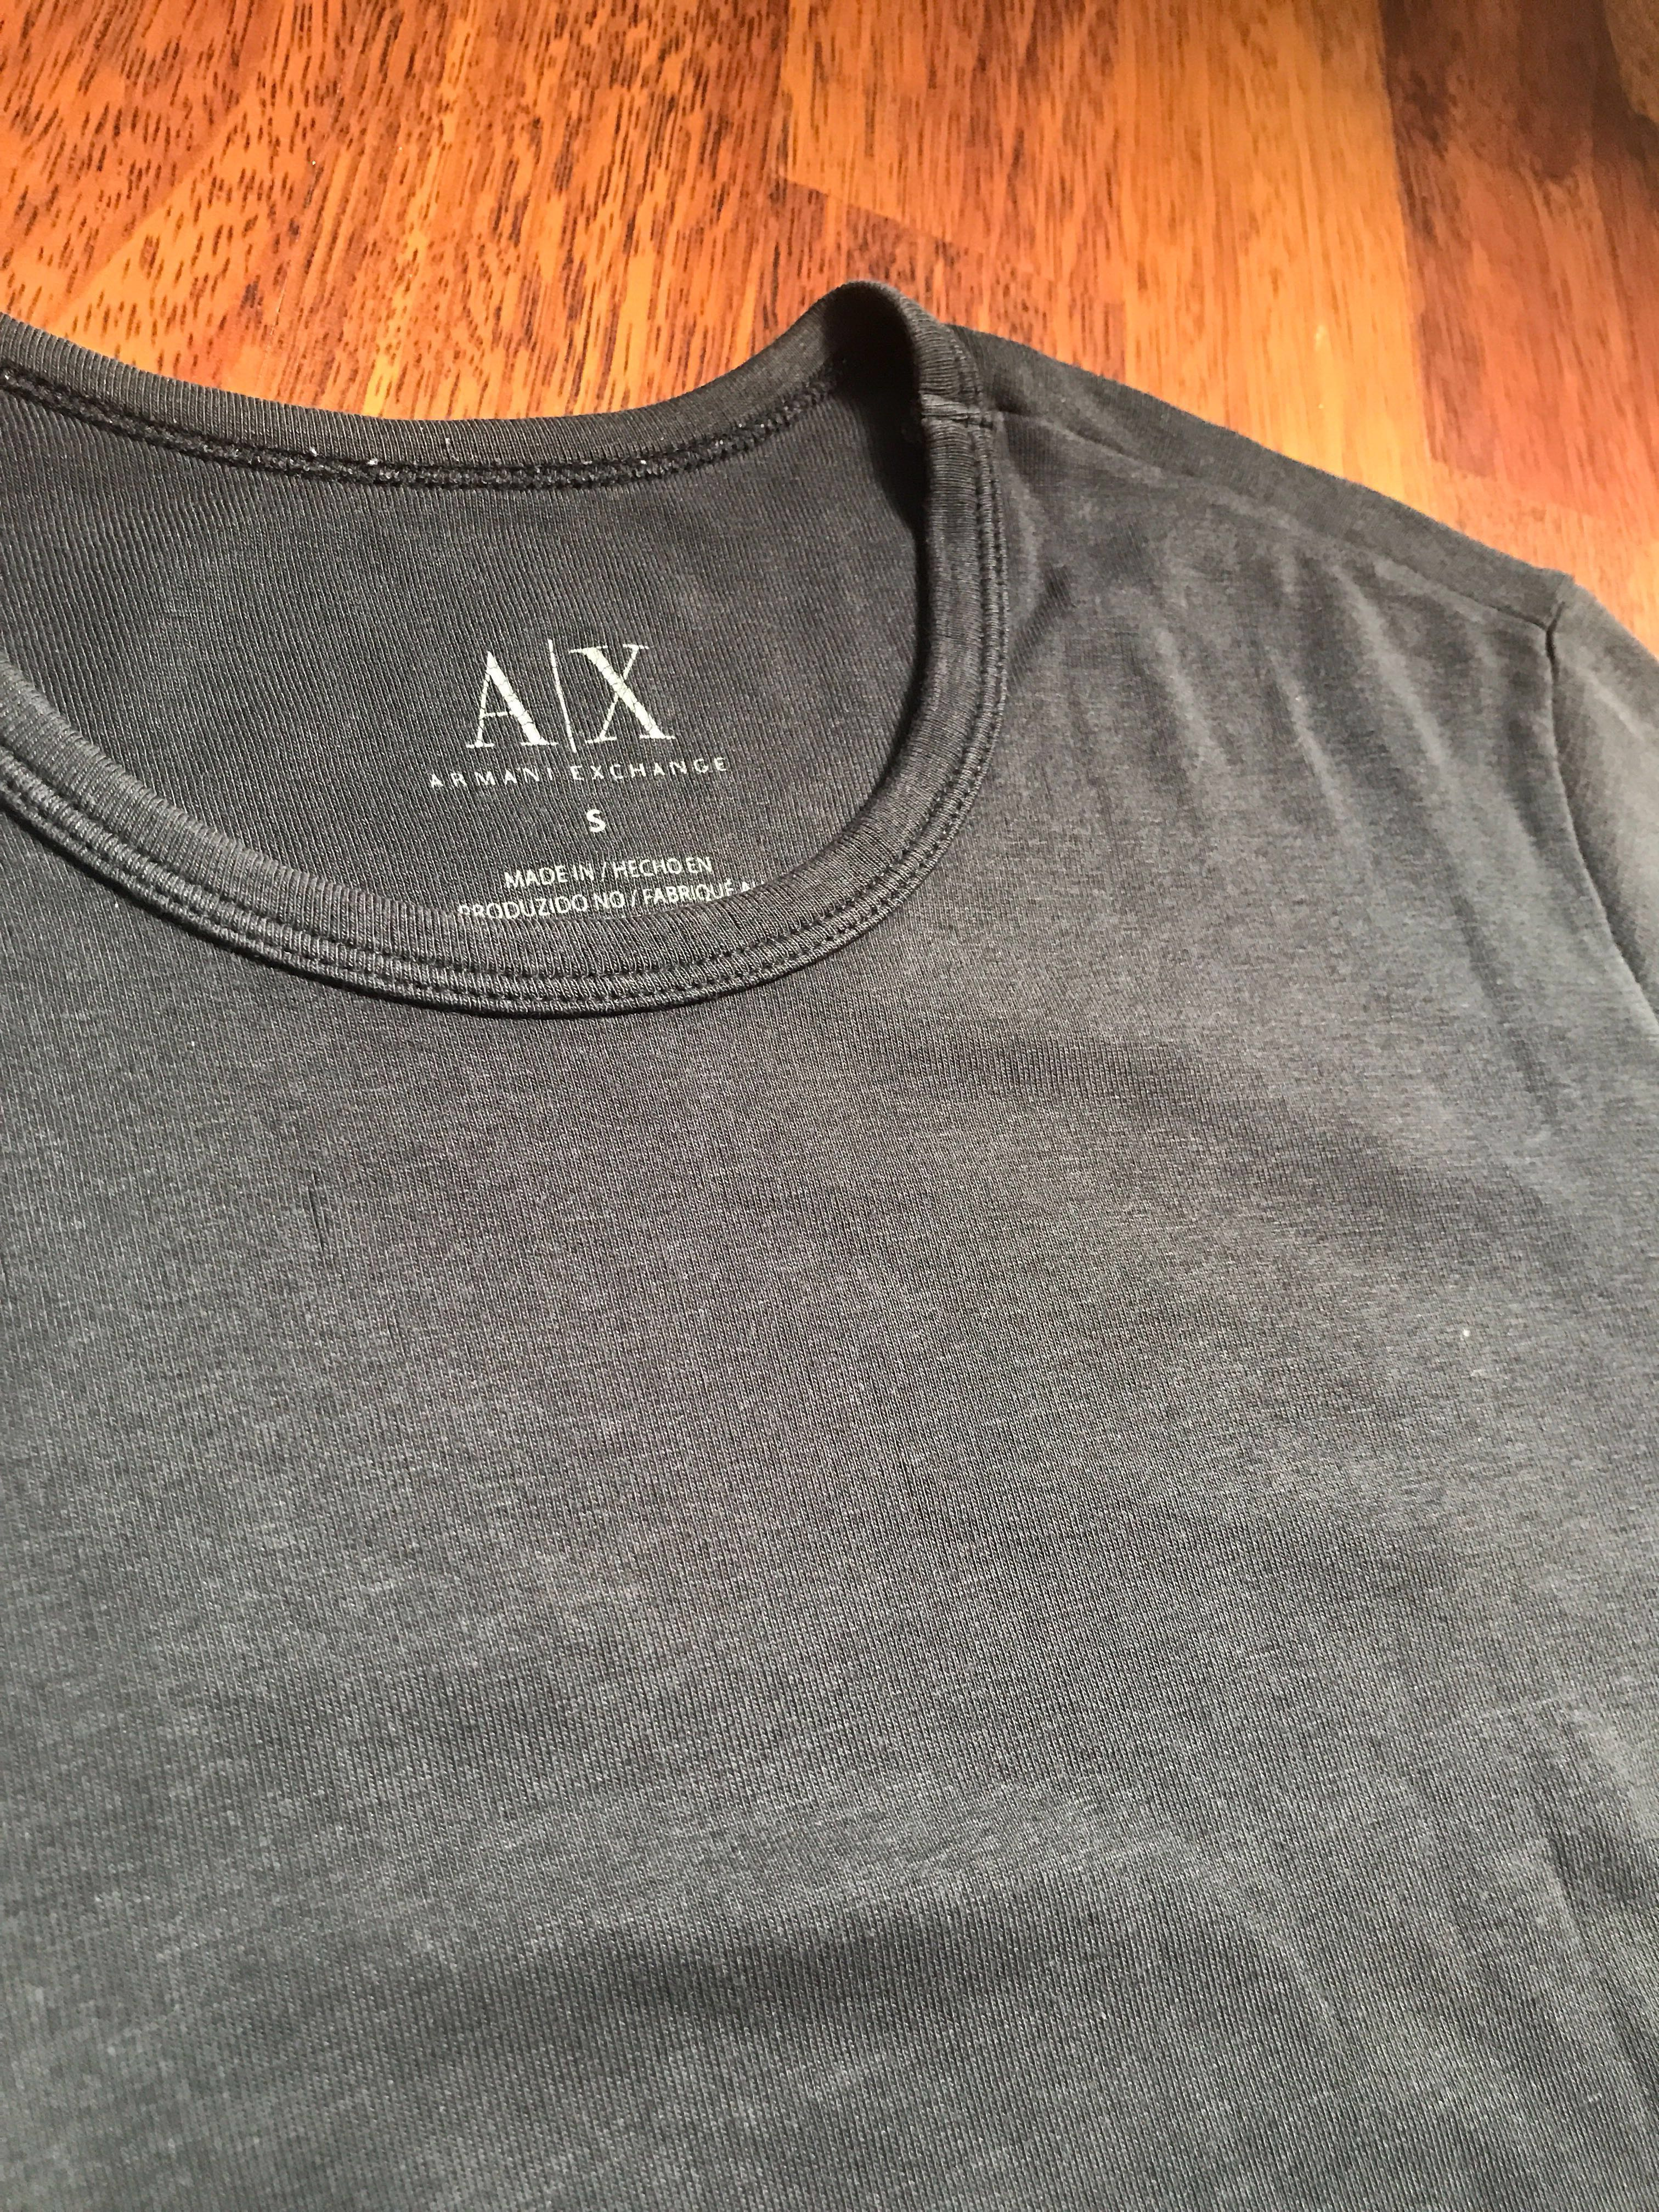 192a6b80 Armani Exchange Black Basic Tee, Men's Fashion, Clothes, Tops on ...